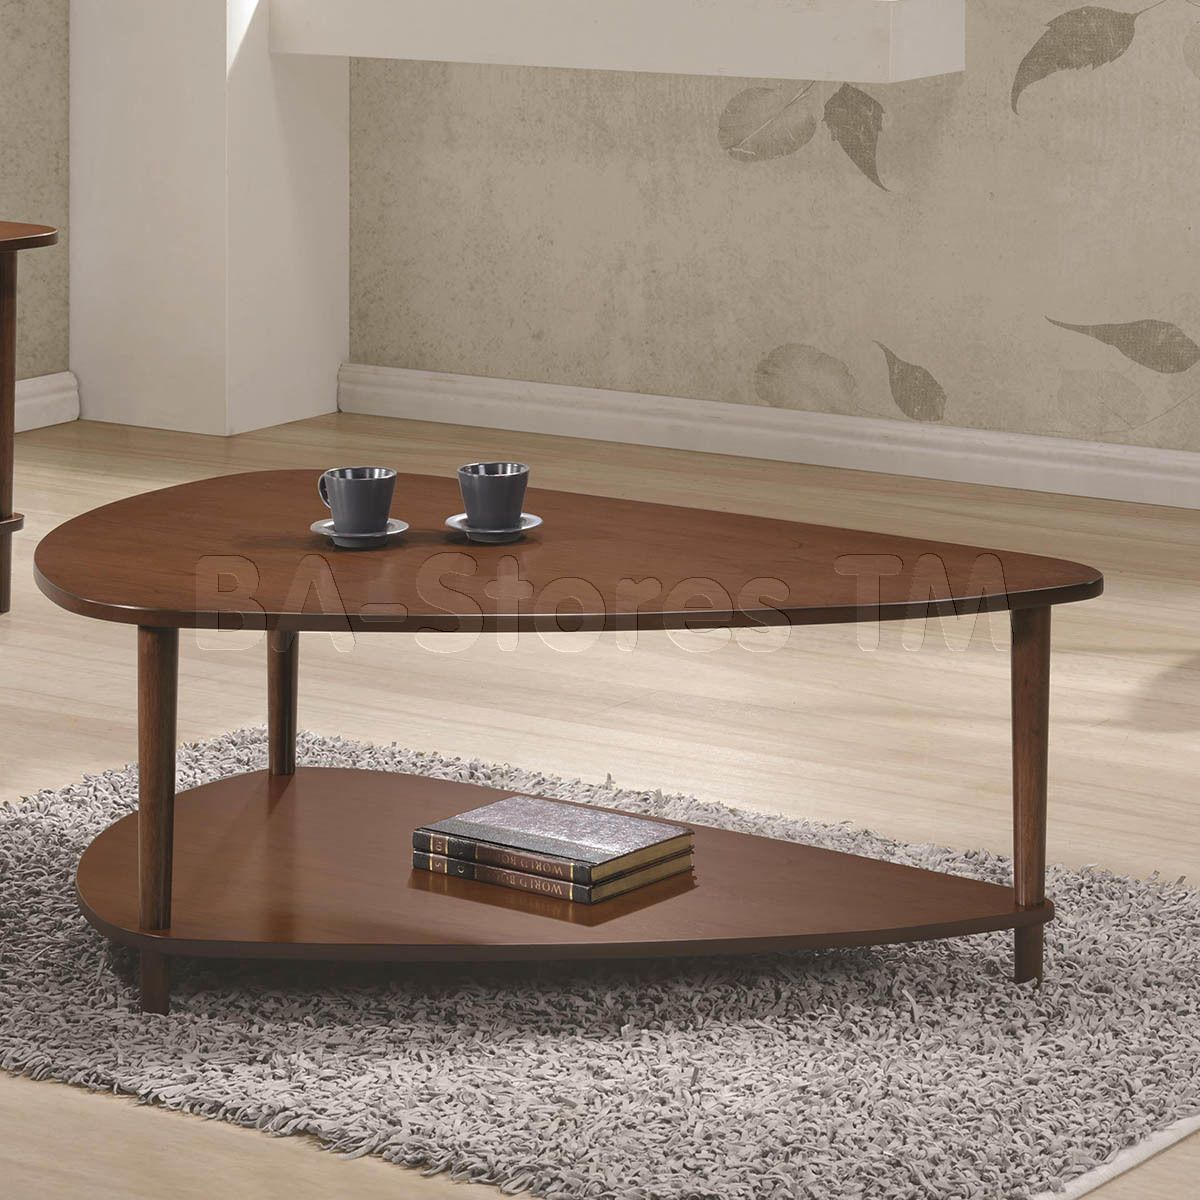 Triangle Coffee Table Coffee And End Tables Coa 704058 5 Coffee Table Triangle Coffee Table Contemporary Coffee Table [ jpg ]